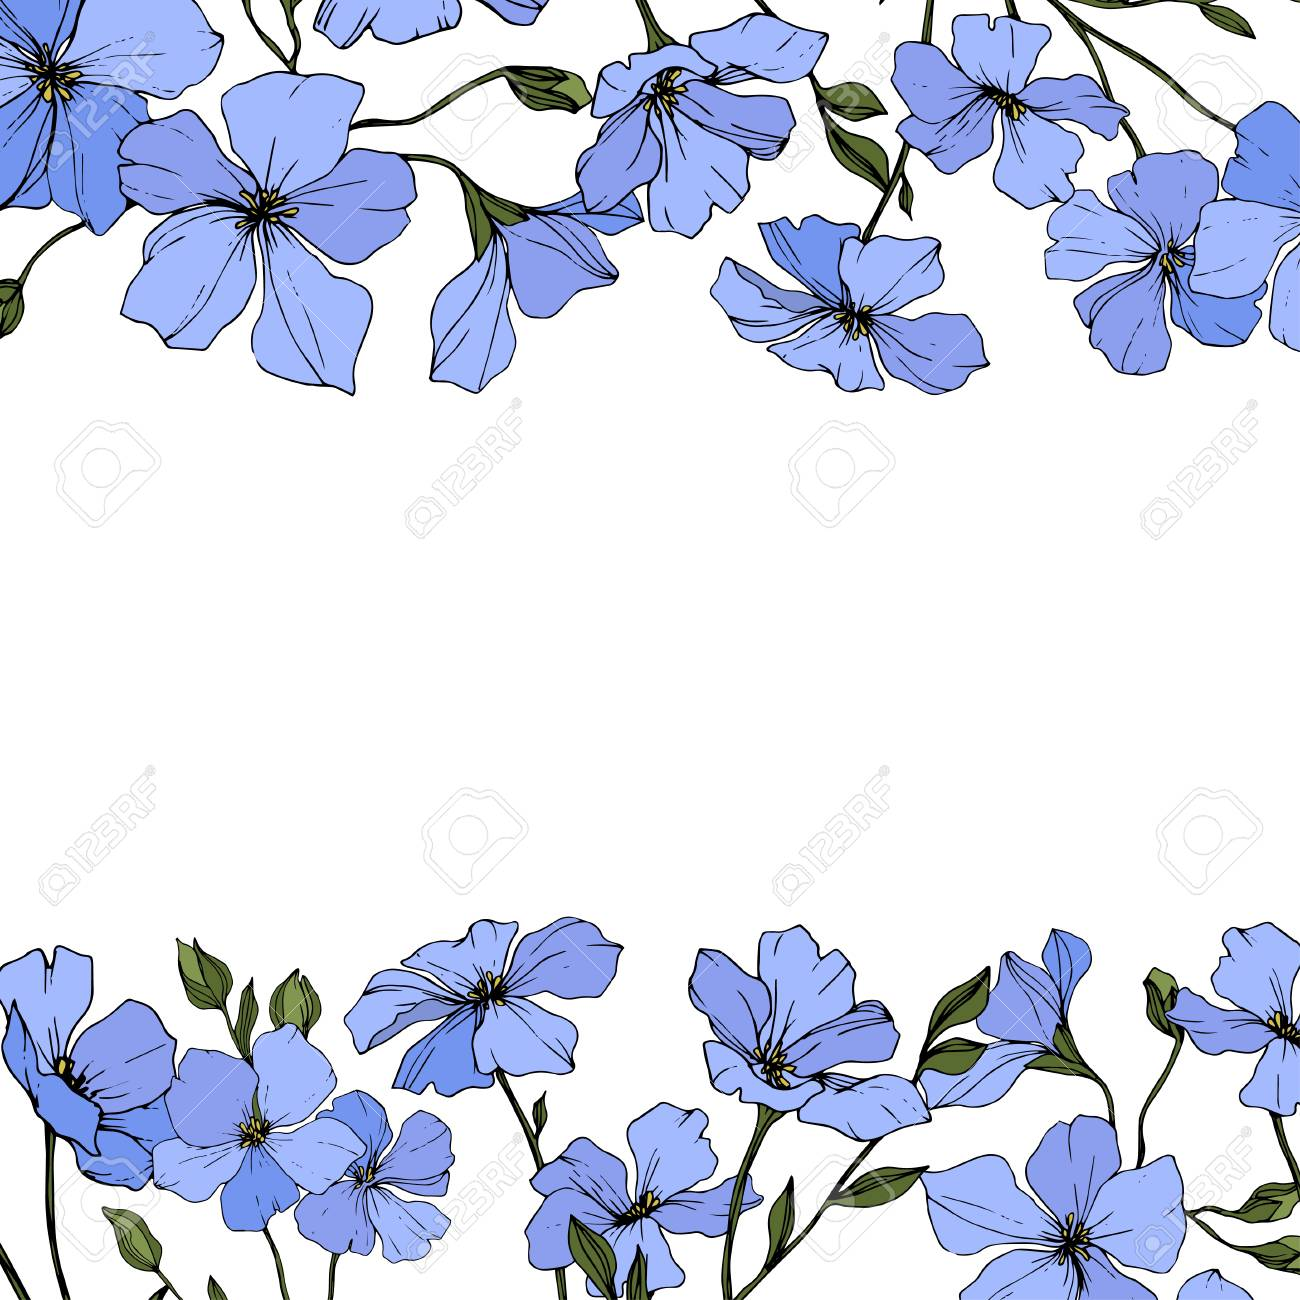 Vector Blue Flax Floral Botanical Flower With Green Leaves